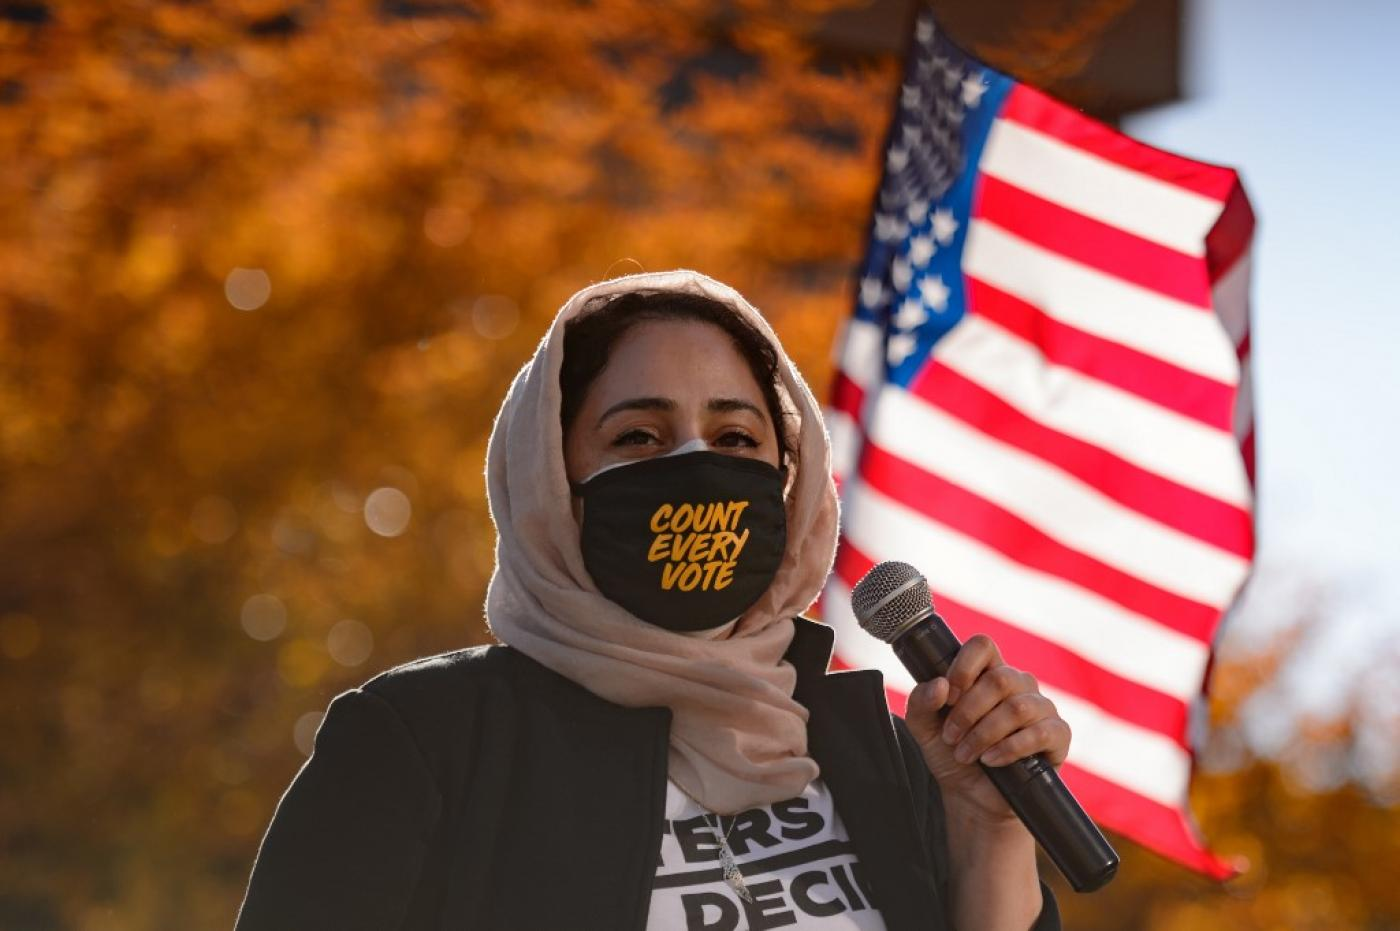 Of the 170 Muslim American candidates that ran in 2020, at least 62 won their elections.